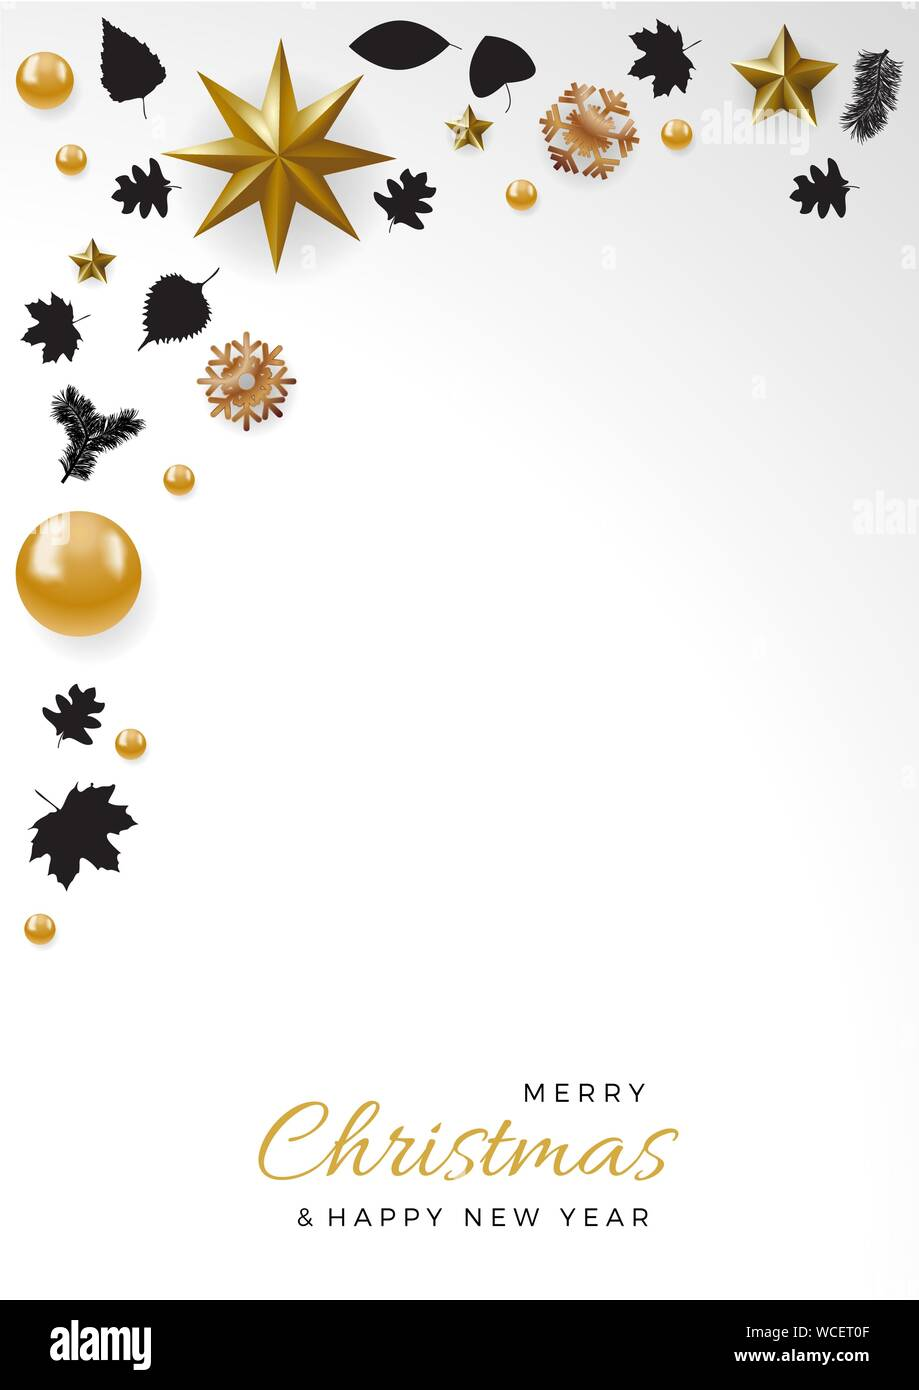 cute christmas wallpaper decorations with copy space in a frame and text on white background WCET0F